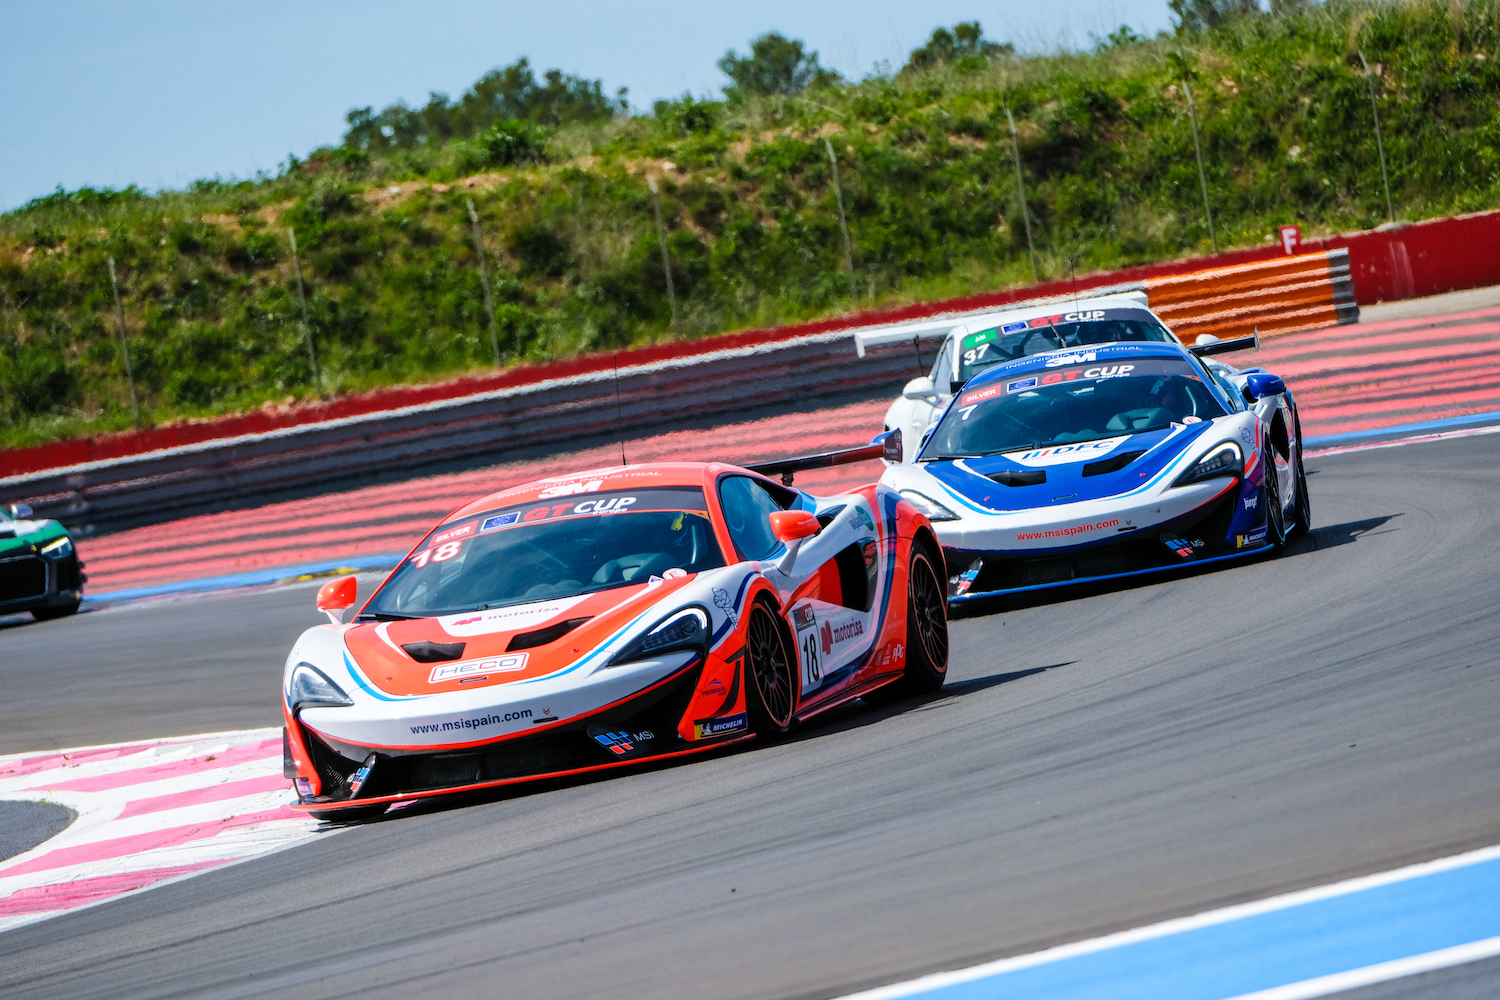 TeoMartin_2019_r1_race2_gtopencup_6055